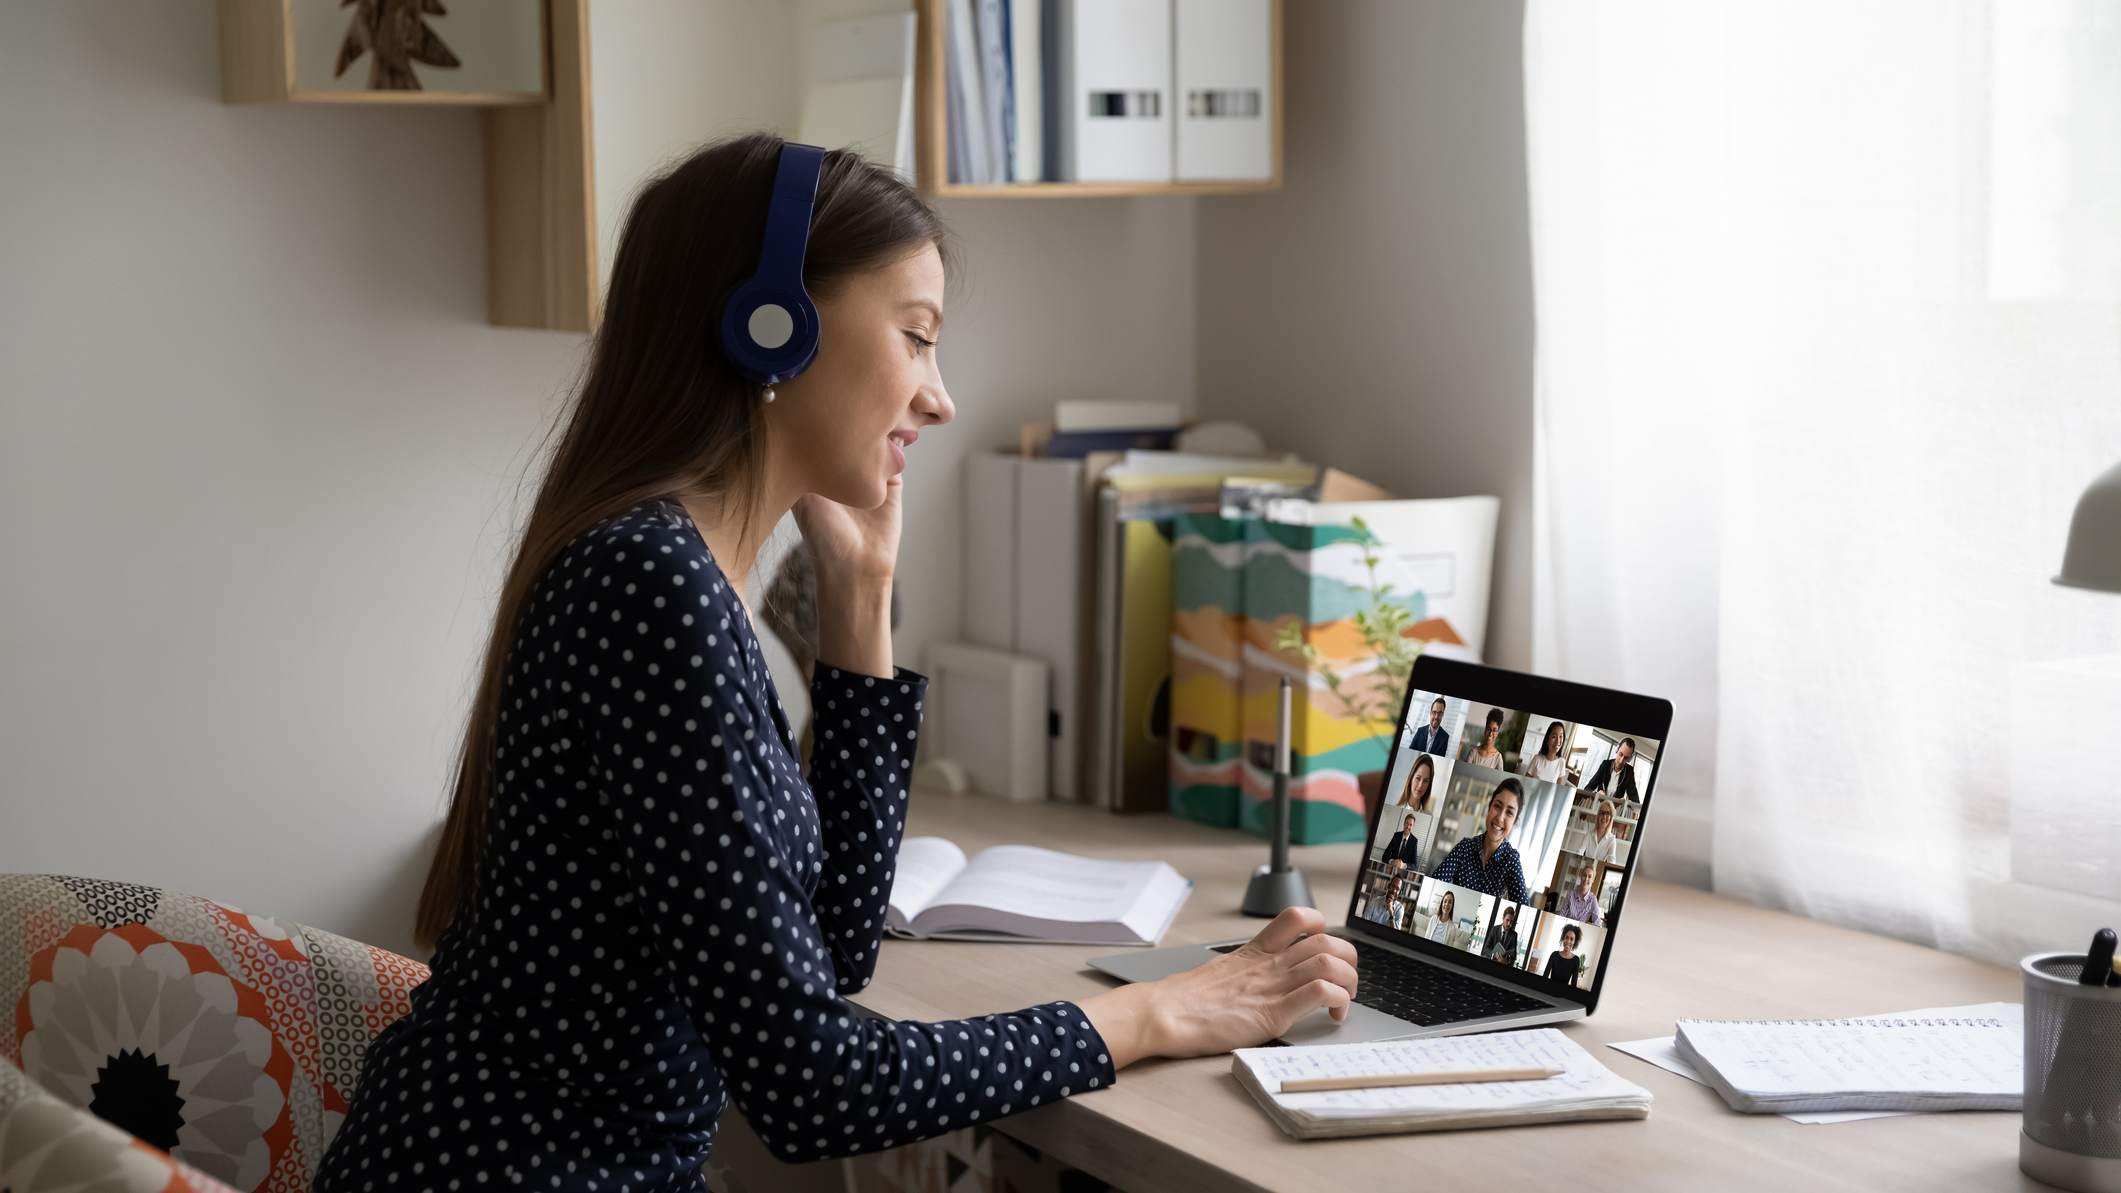 Woman conducting work meeting remotely